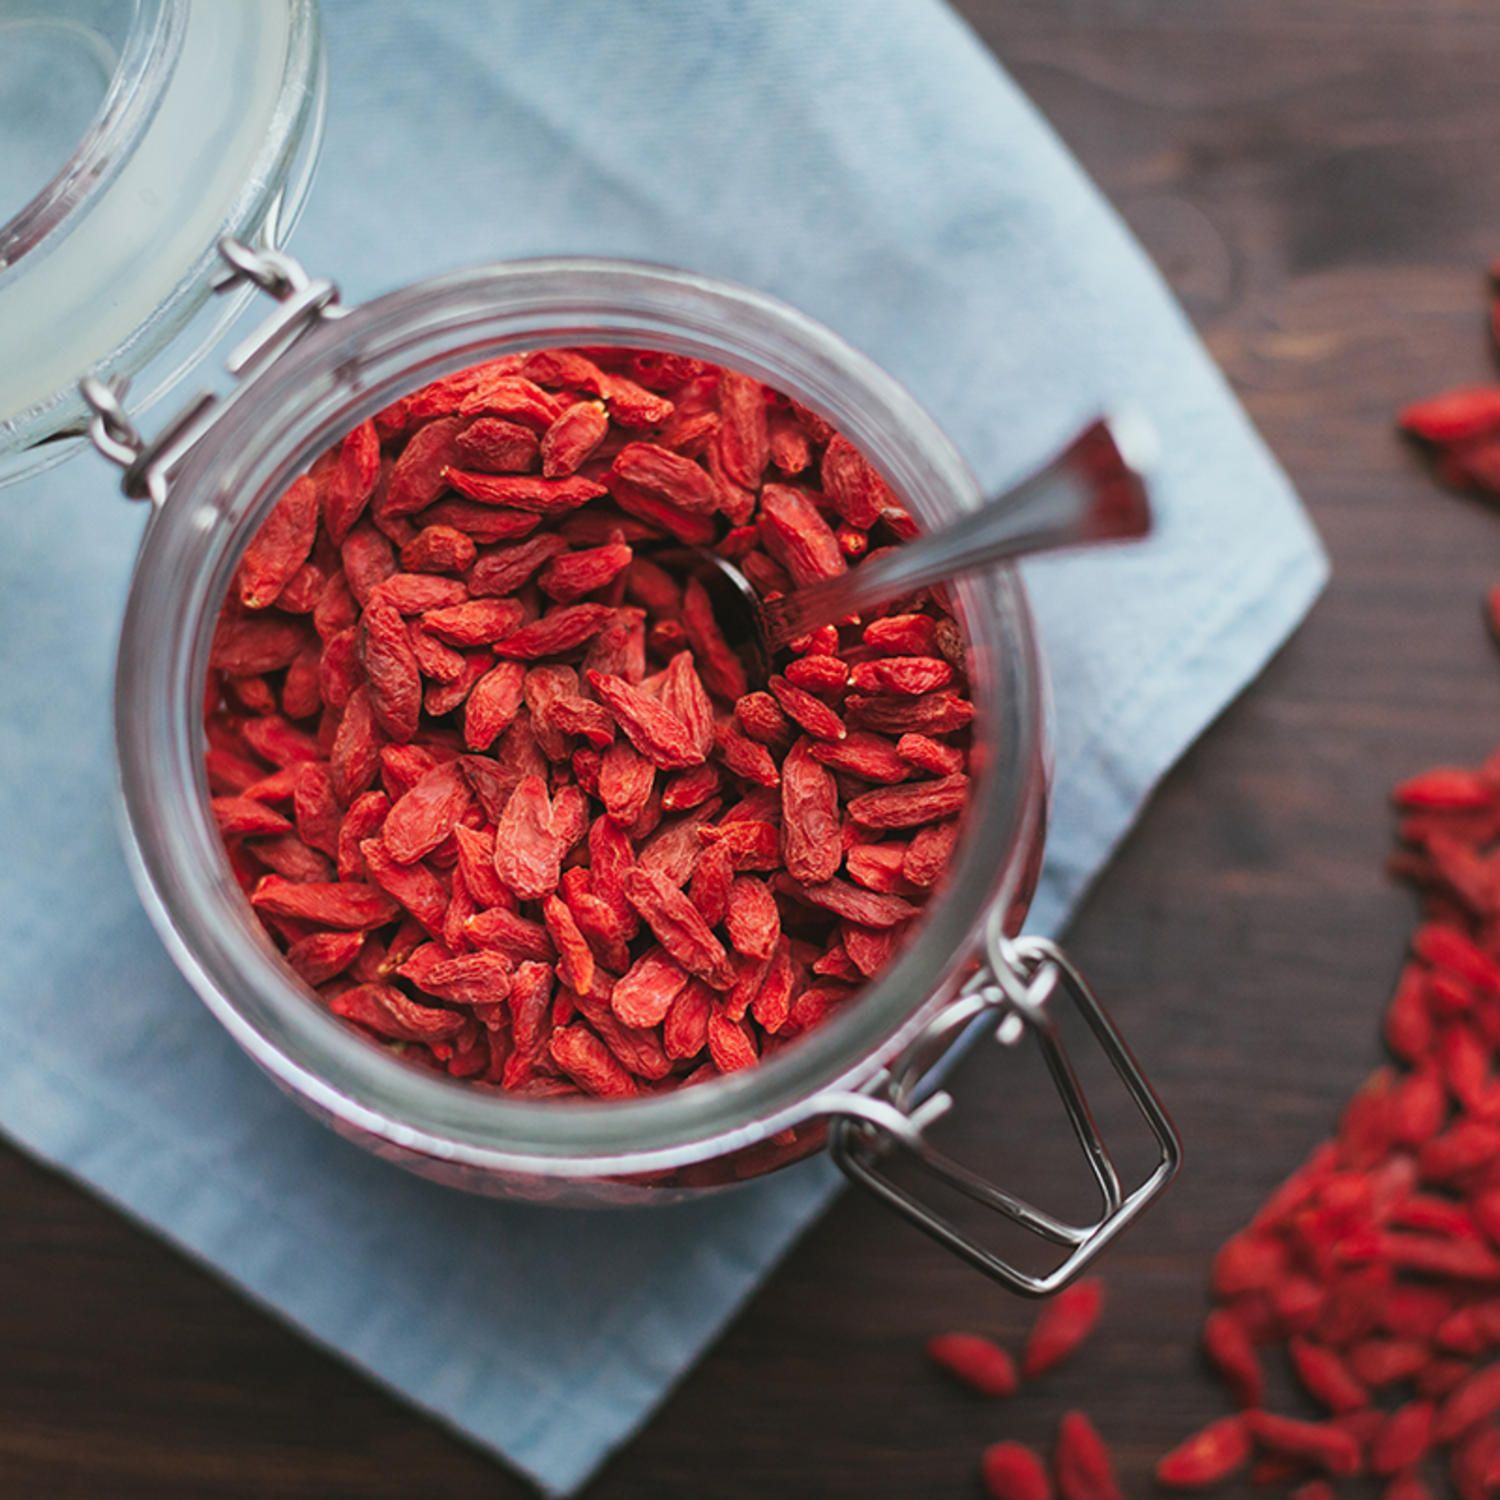 7 Great Goji Berry Recipes So You Can Get More of This Tasty